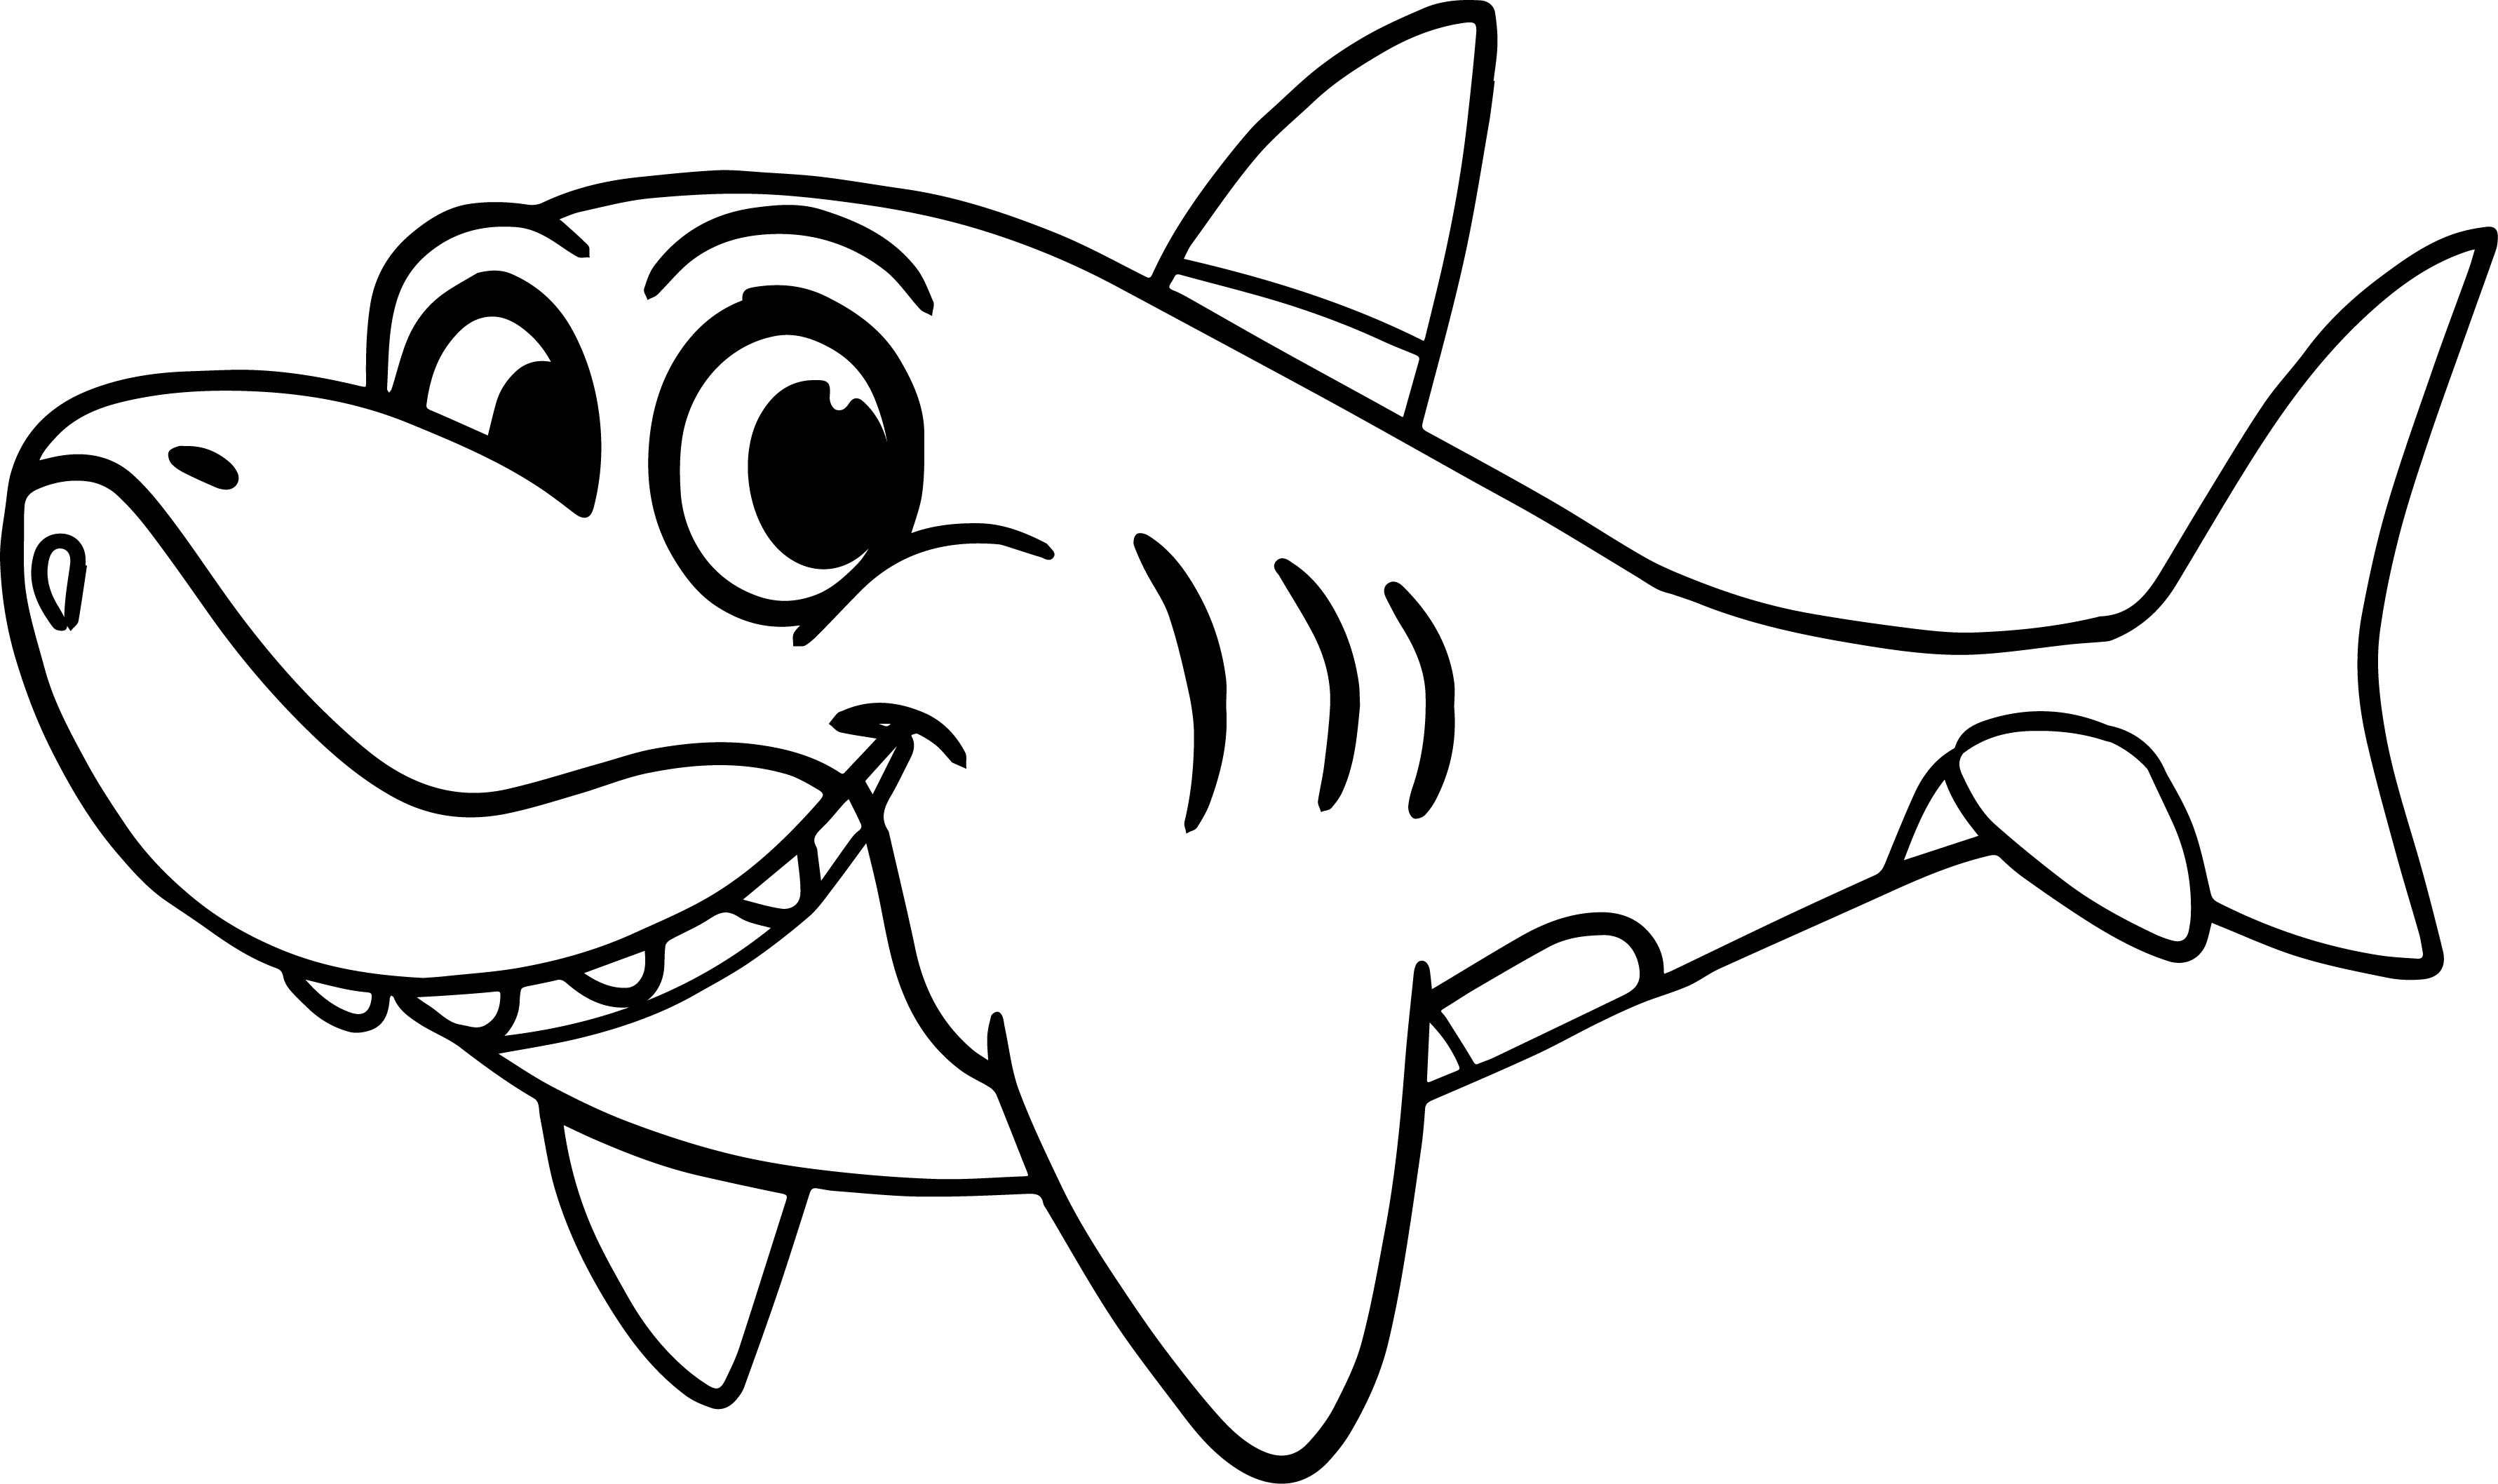 3562x2116 Coloring Page For Shark Free Draw To Color